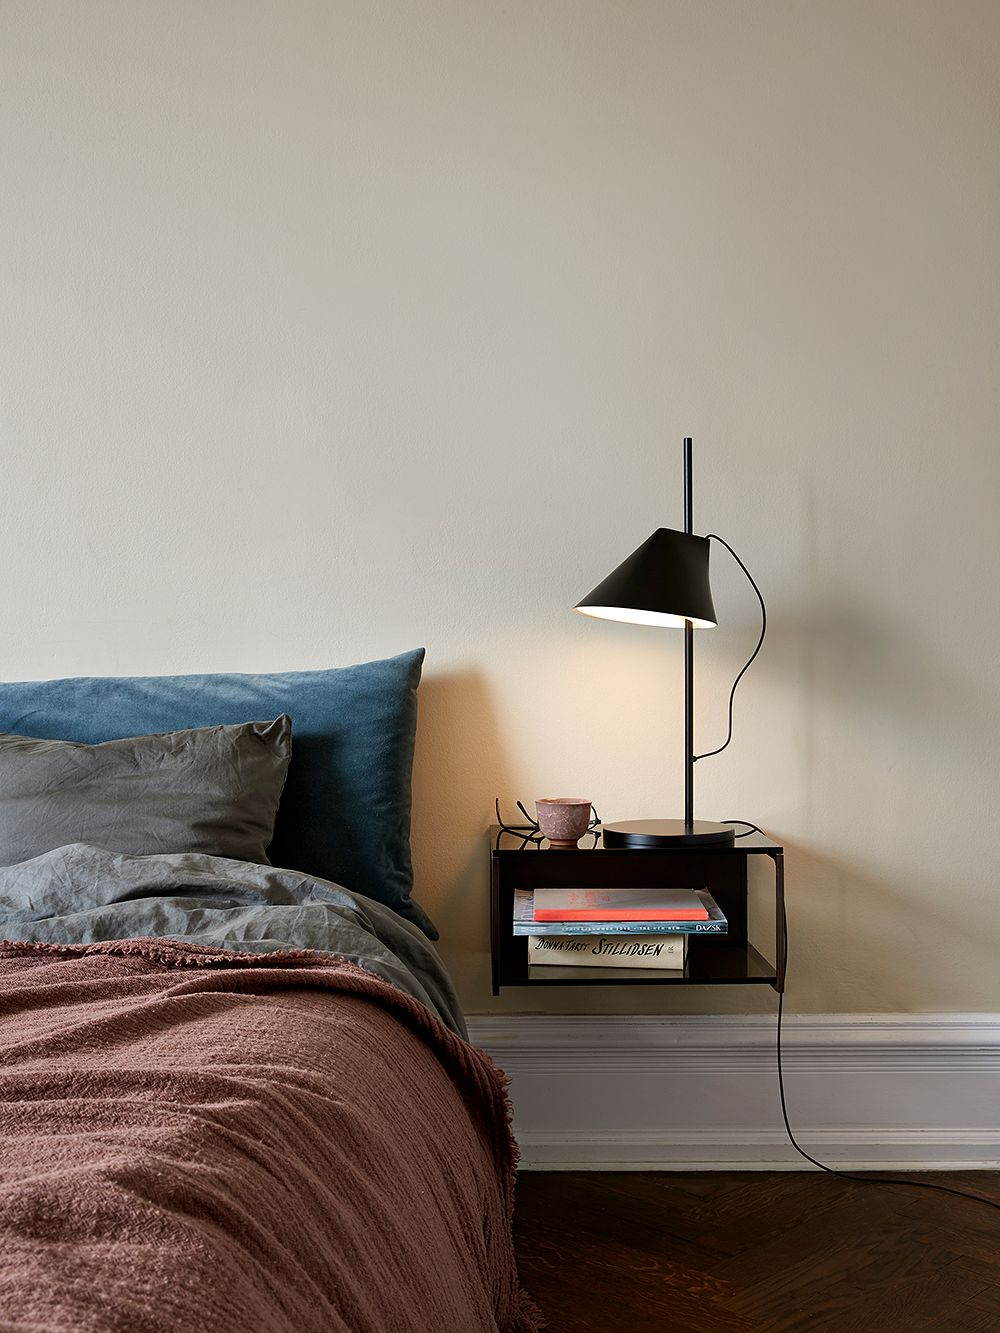 The black Yuh table lamp in a bedroom, on a nightstand.